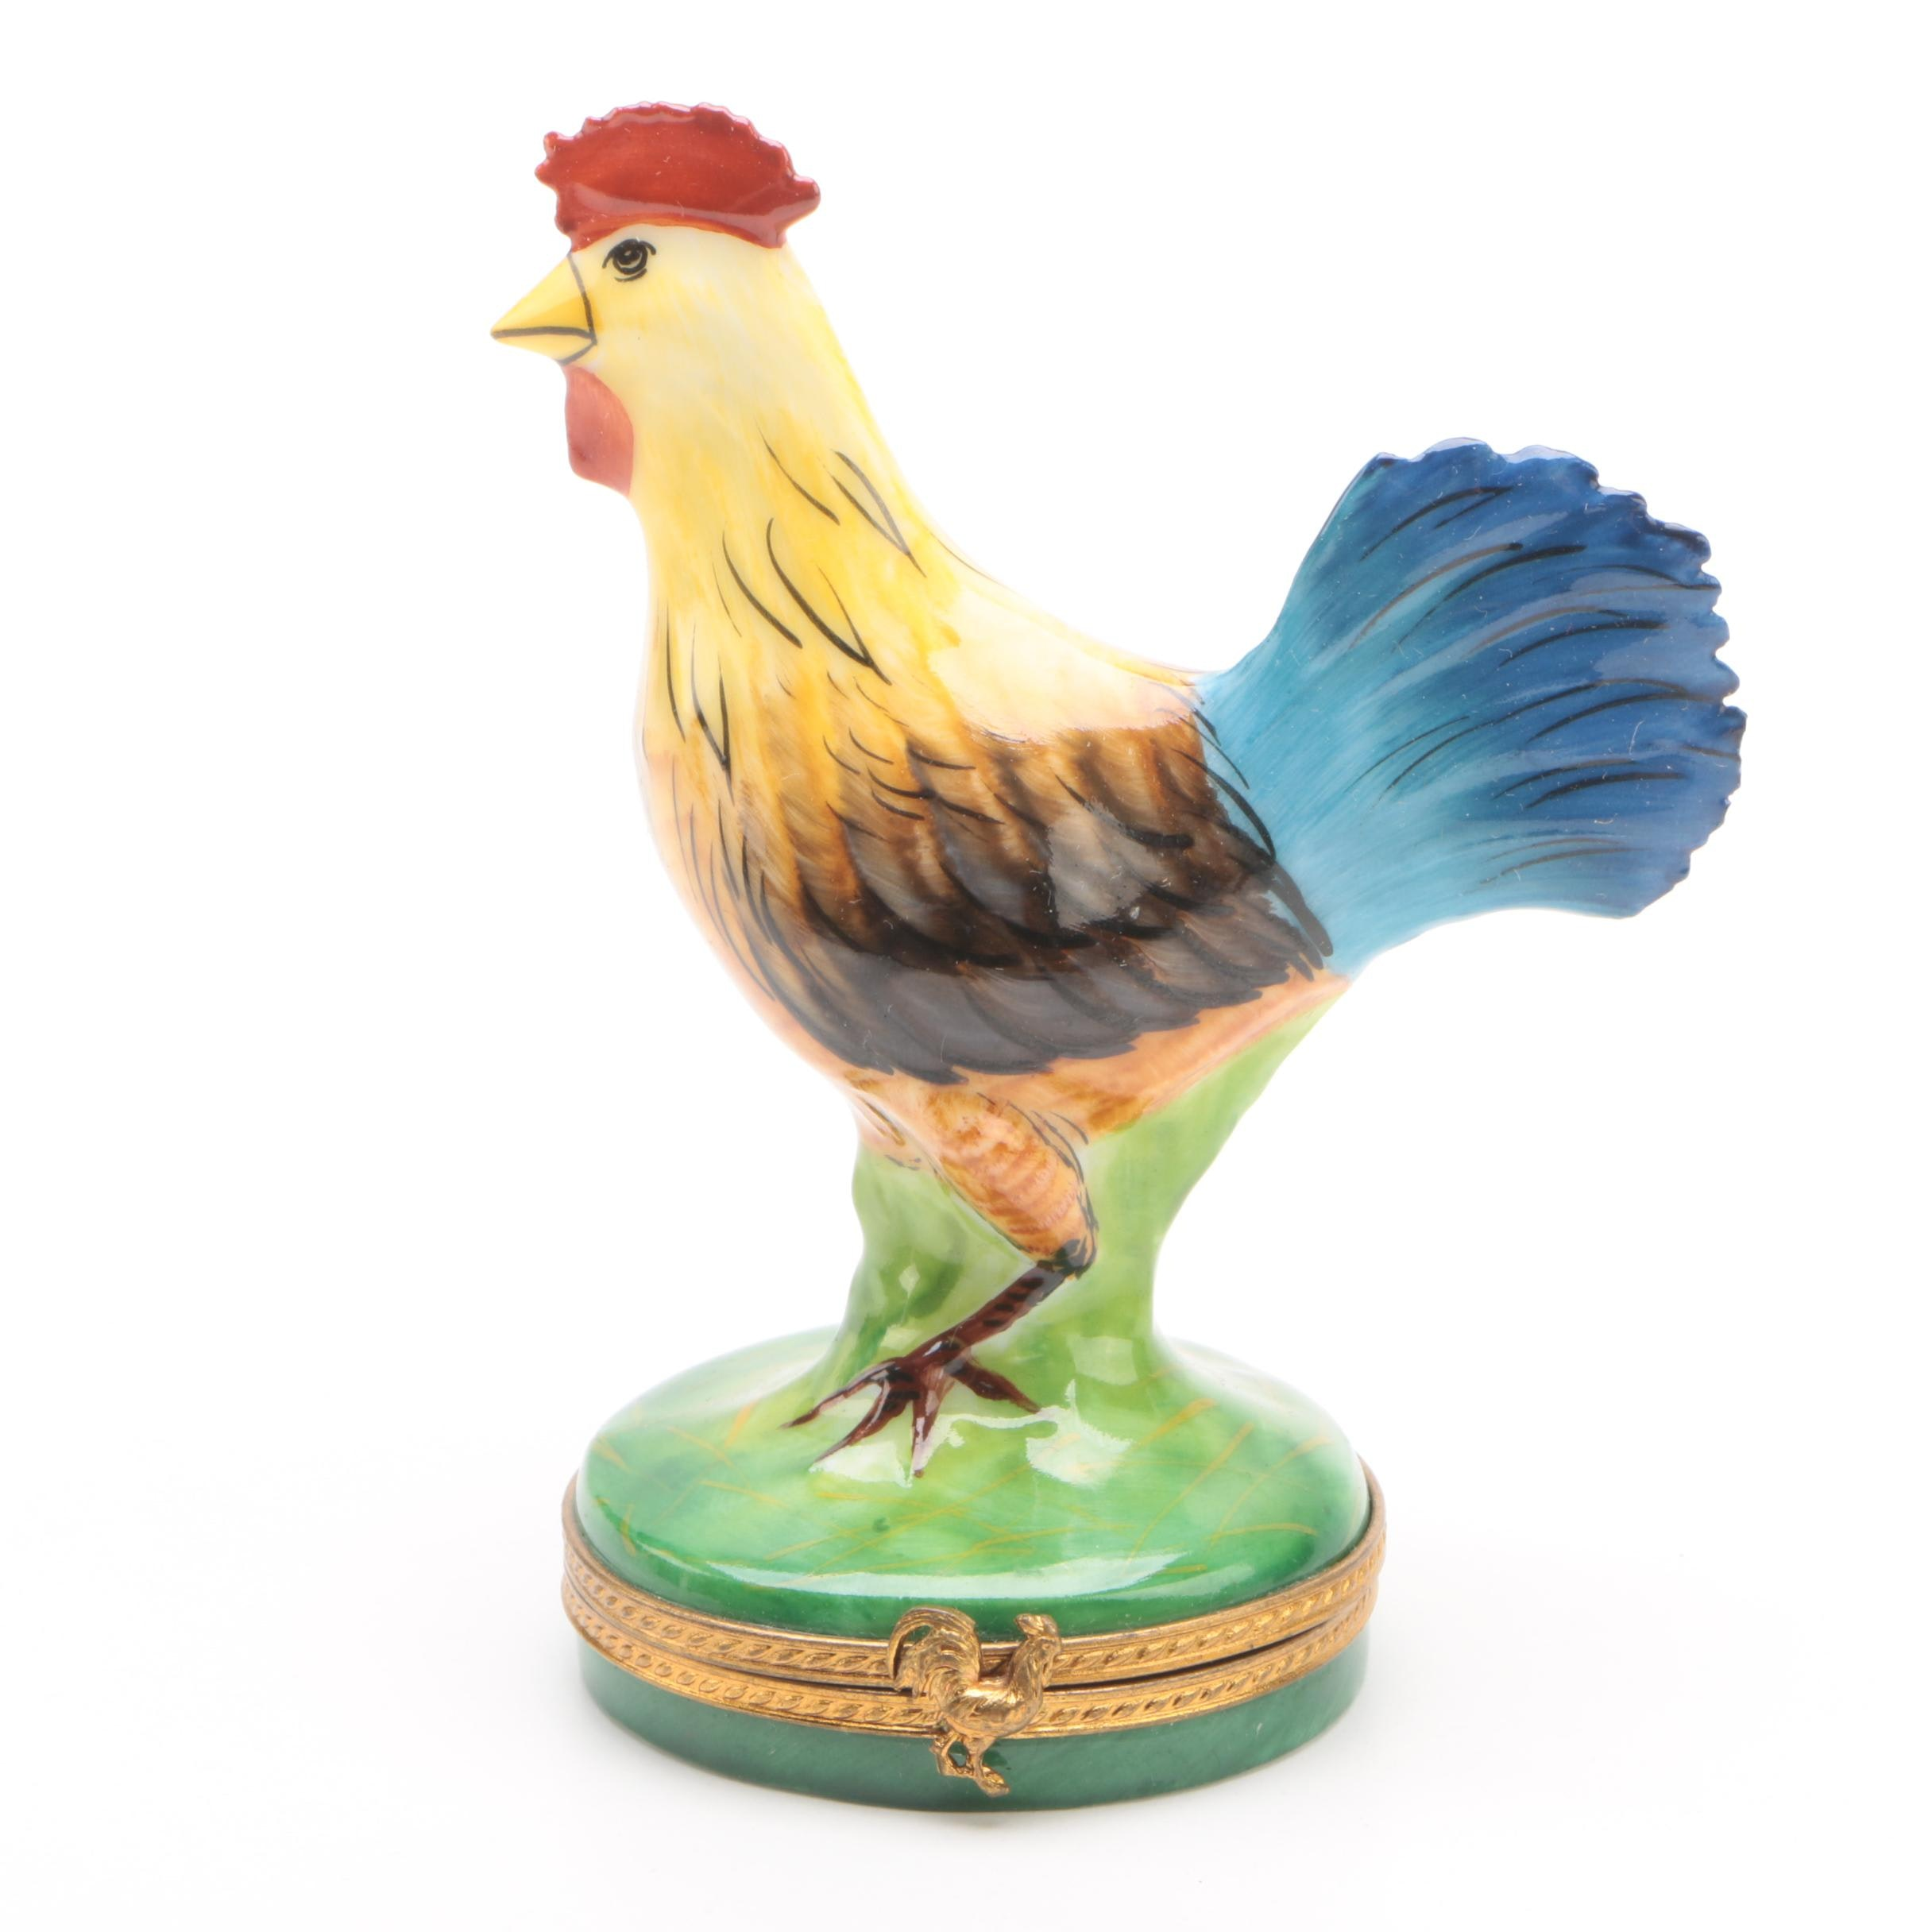 French Home Limoges Limited Edition Porcelain Rooster Trinket Box